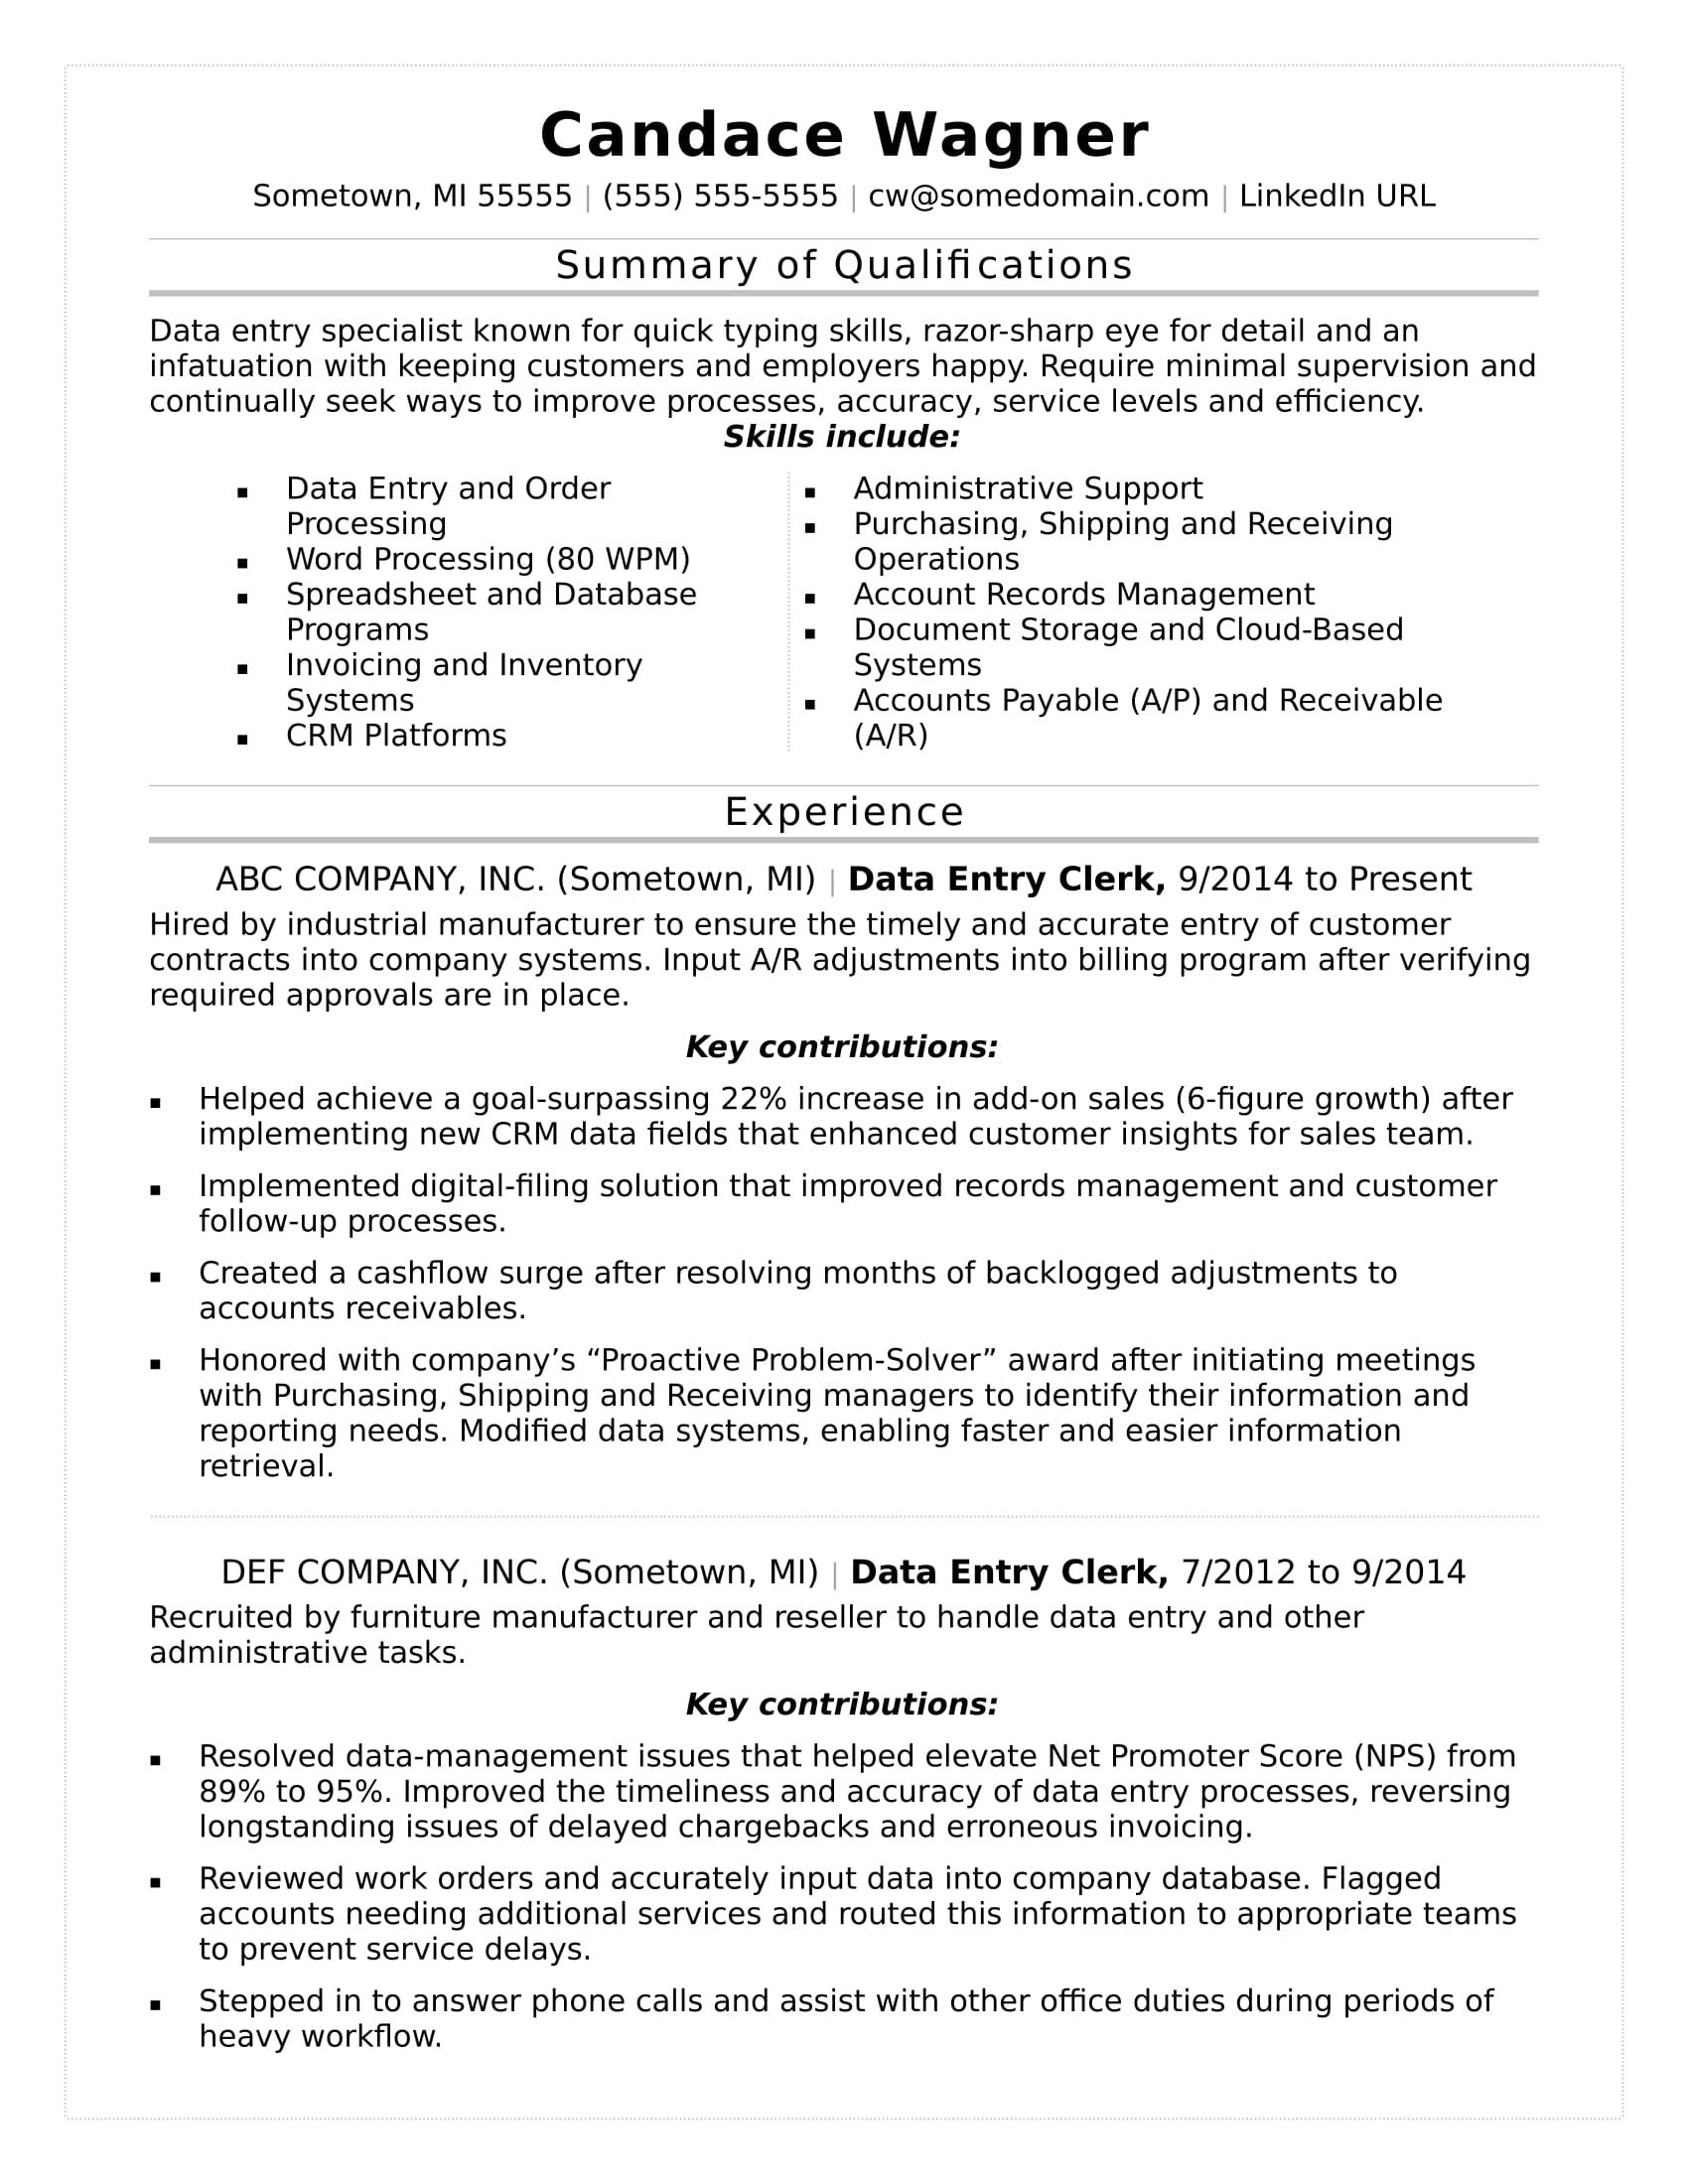 summary of qualifications resume for data entry